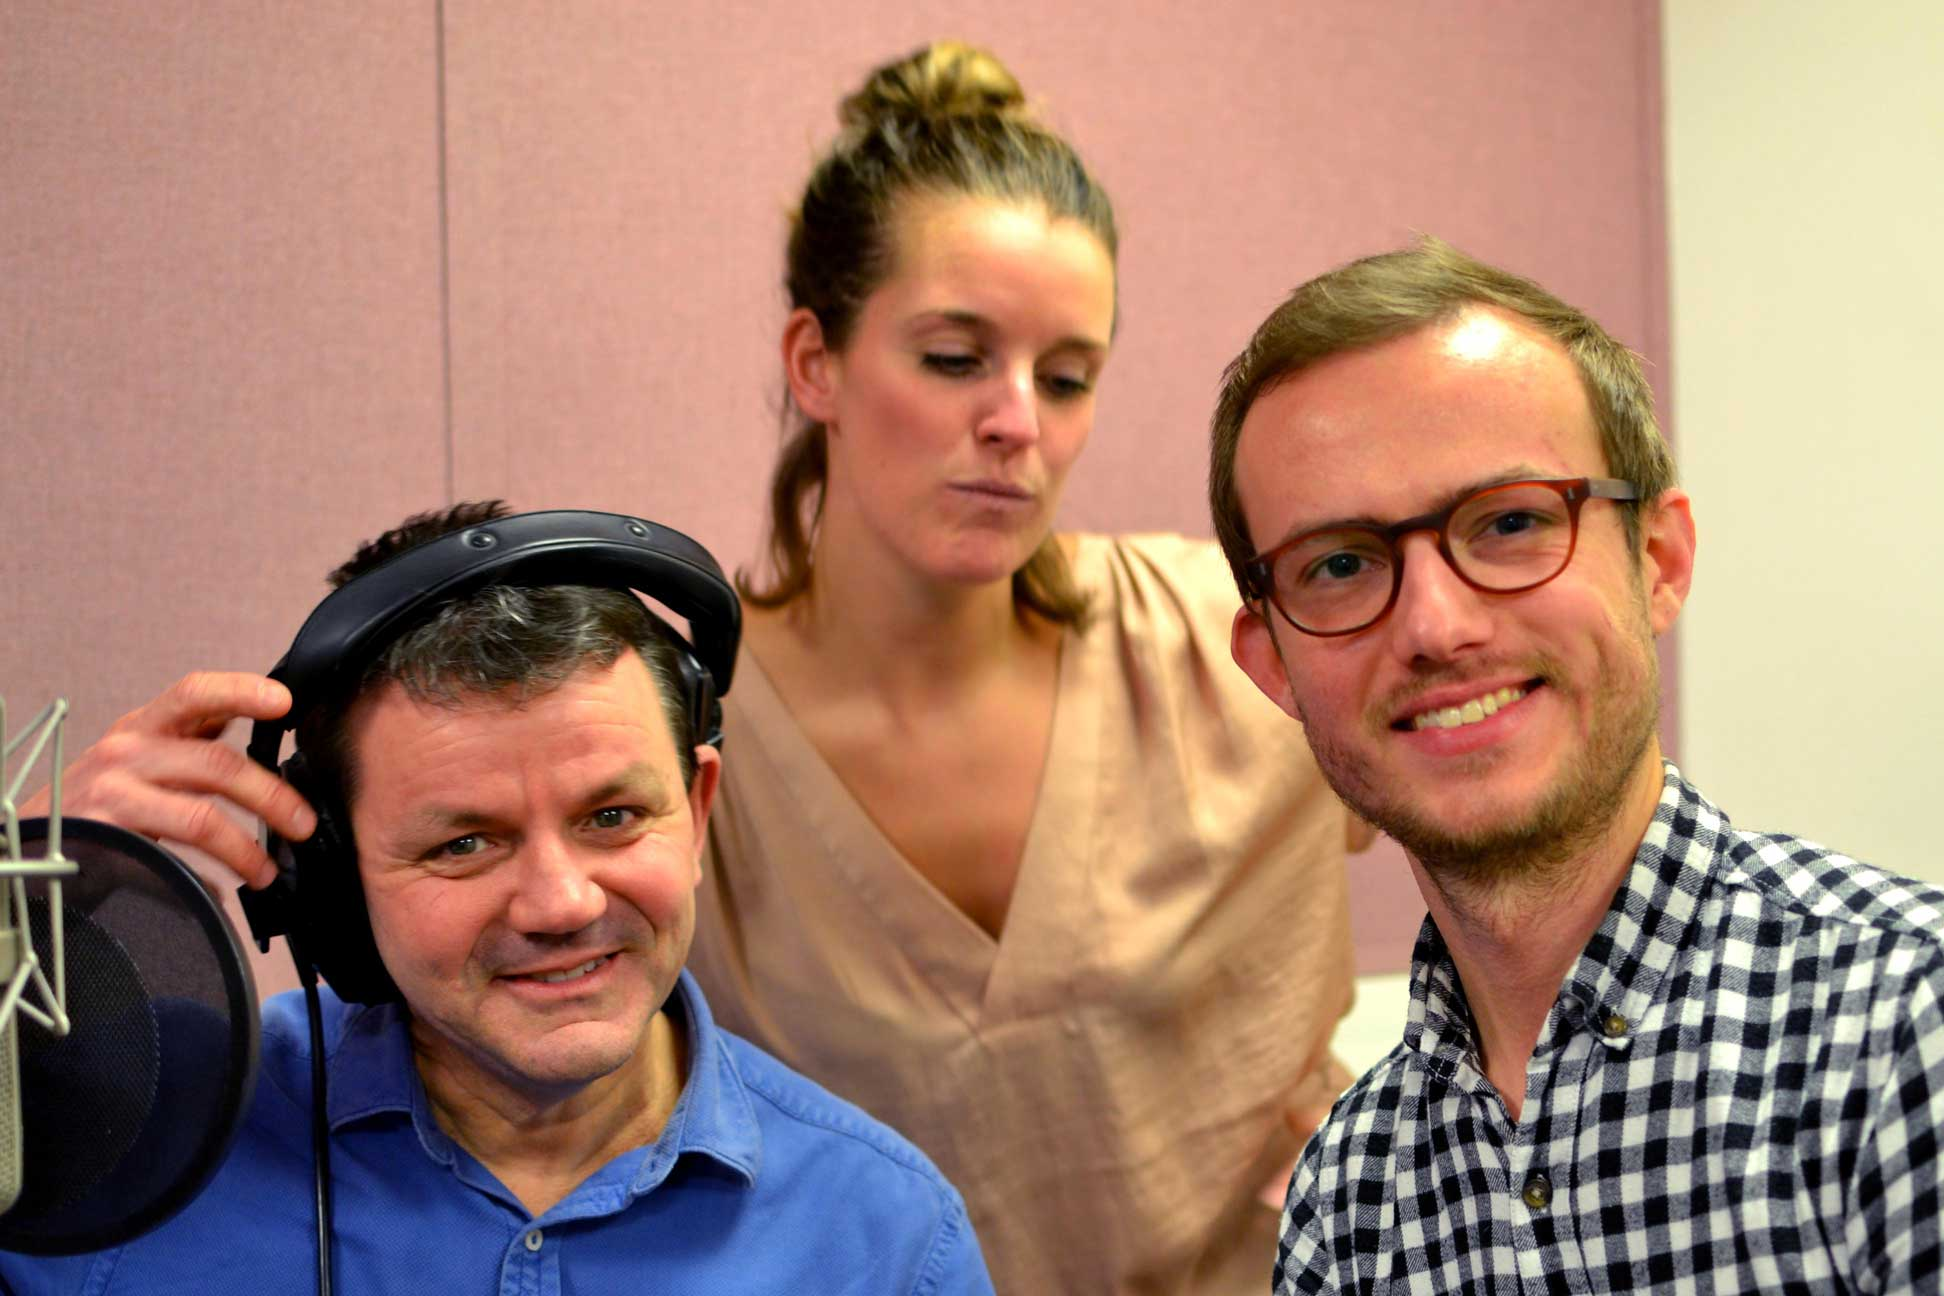 The Cumulus Cast, from left to right: Wayne Forester (voice of Mister Booby), Rhian Marston-Jones (voice of Penwyn), Philippe Nielsen (voice of Bryder)